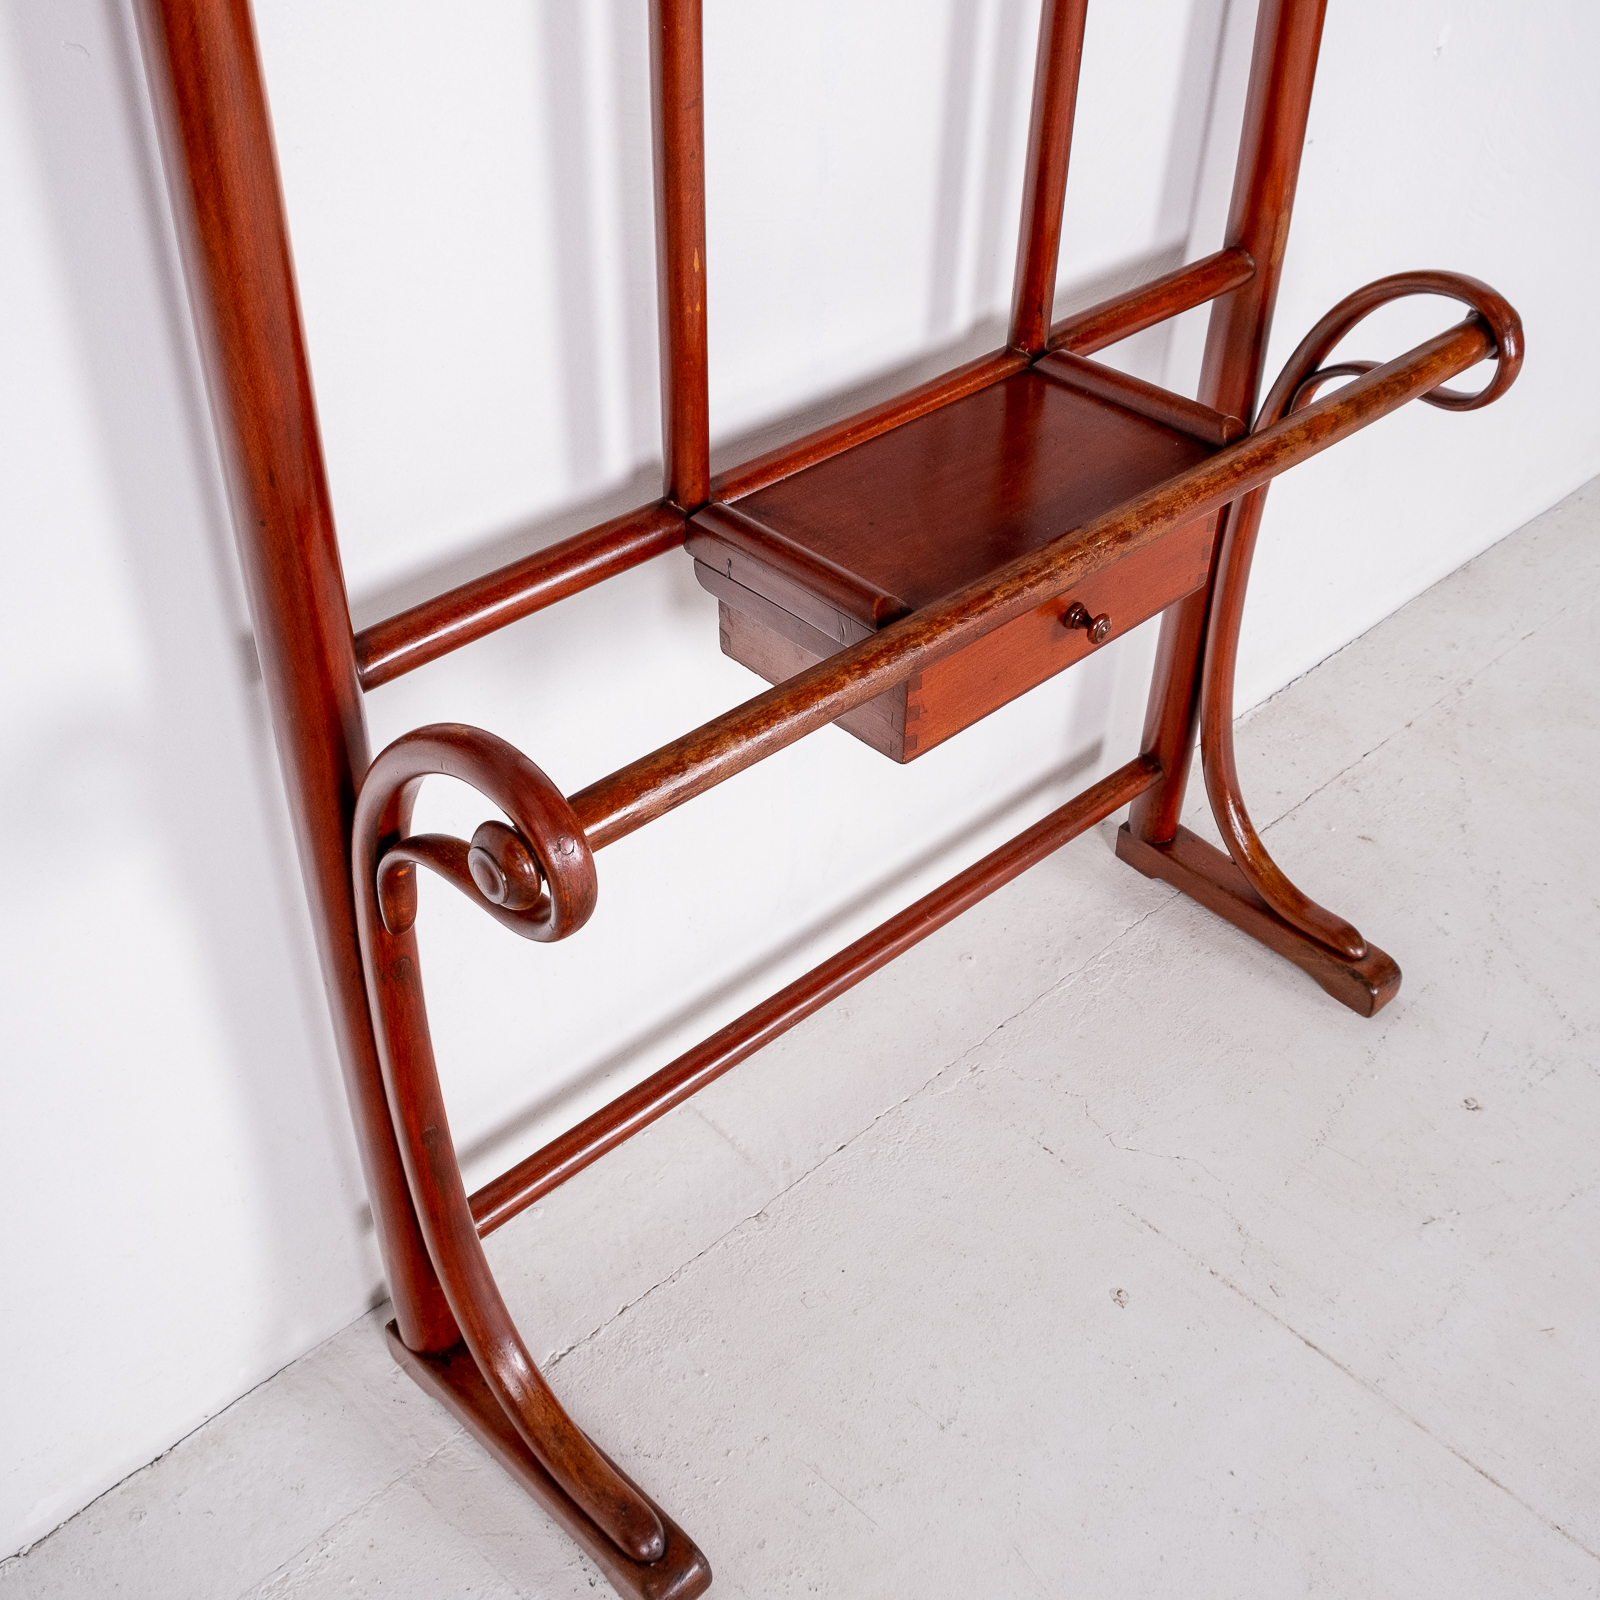 Model No. 4 Coat Stand By Michael Thonet For Thonet, Vienna, 1910005